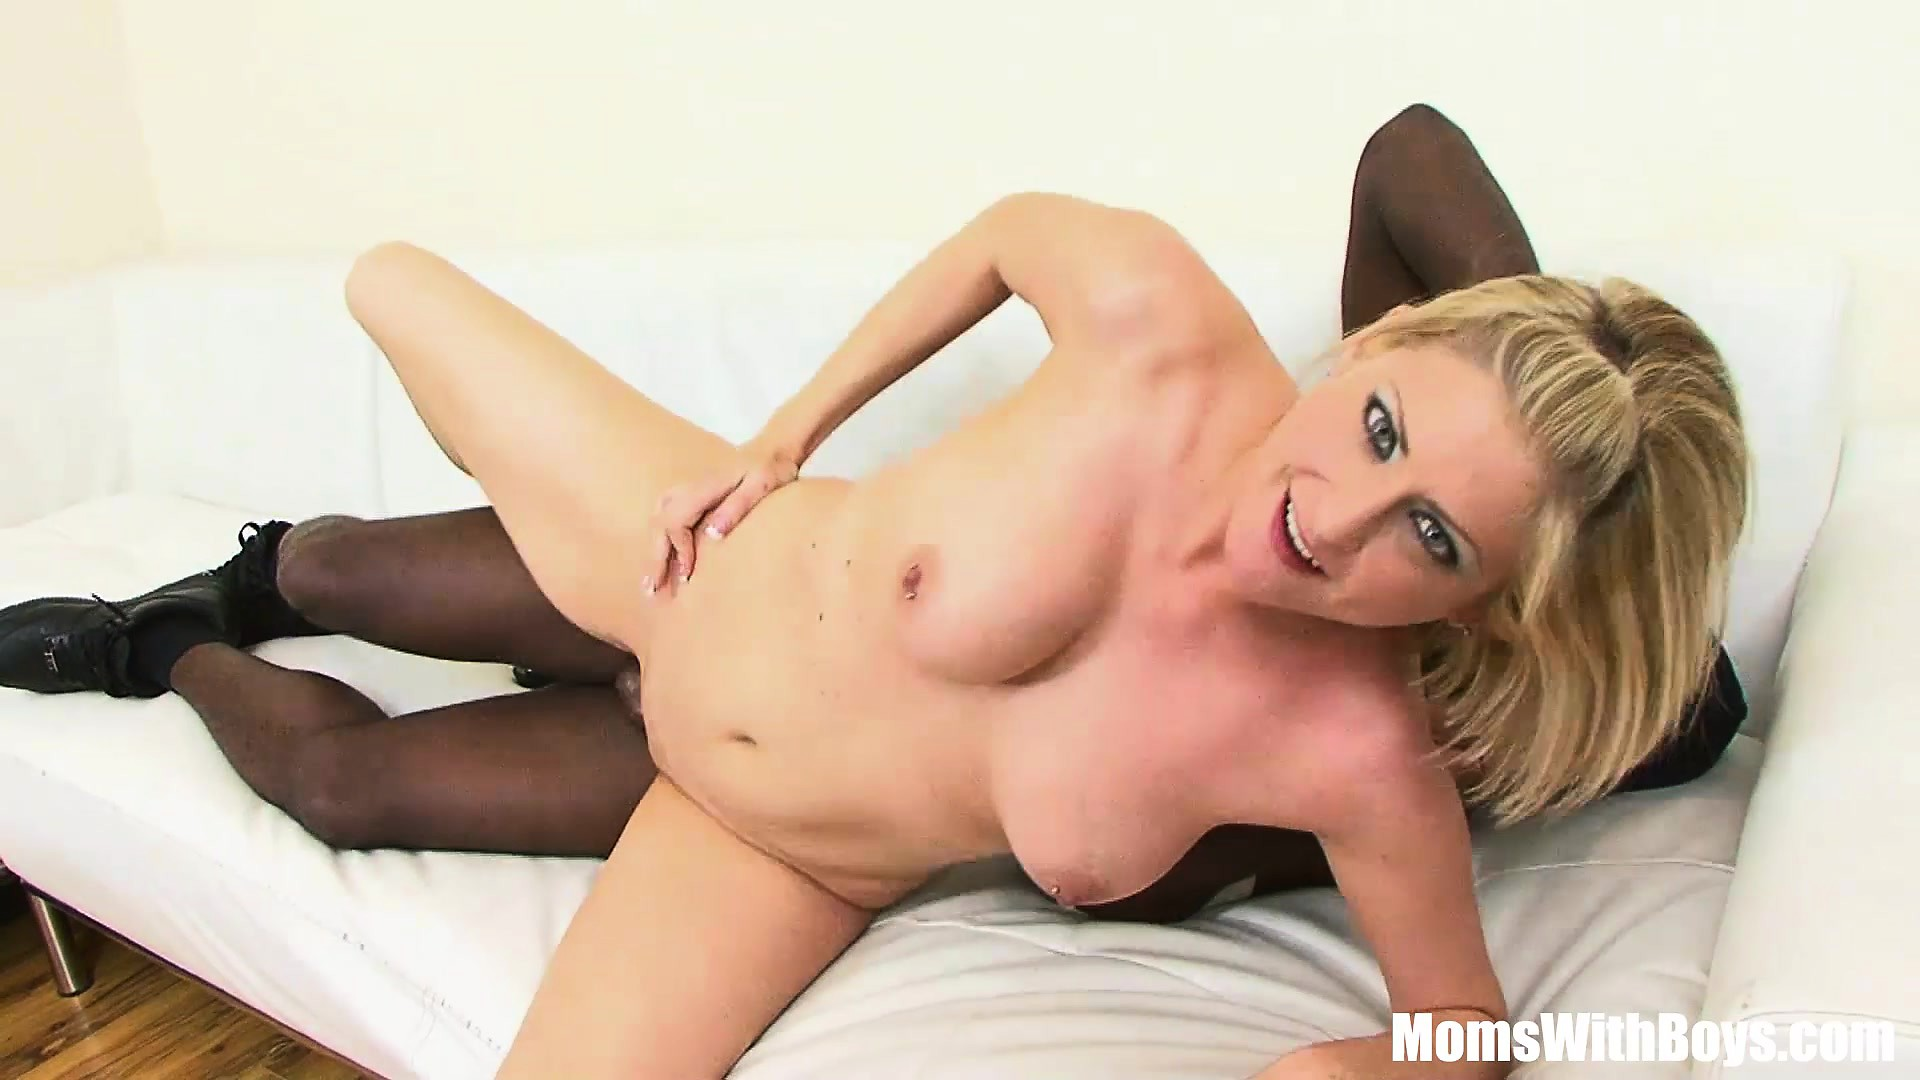 Blonde MILF Lya Pink With Pierce Nipples Interracial Fuck